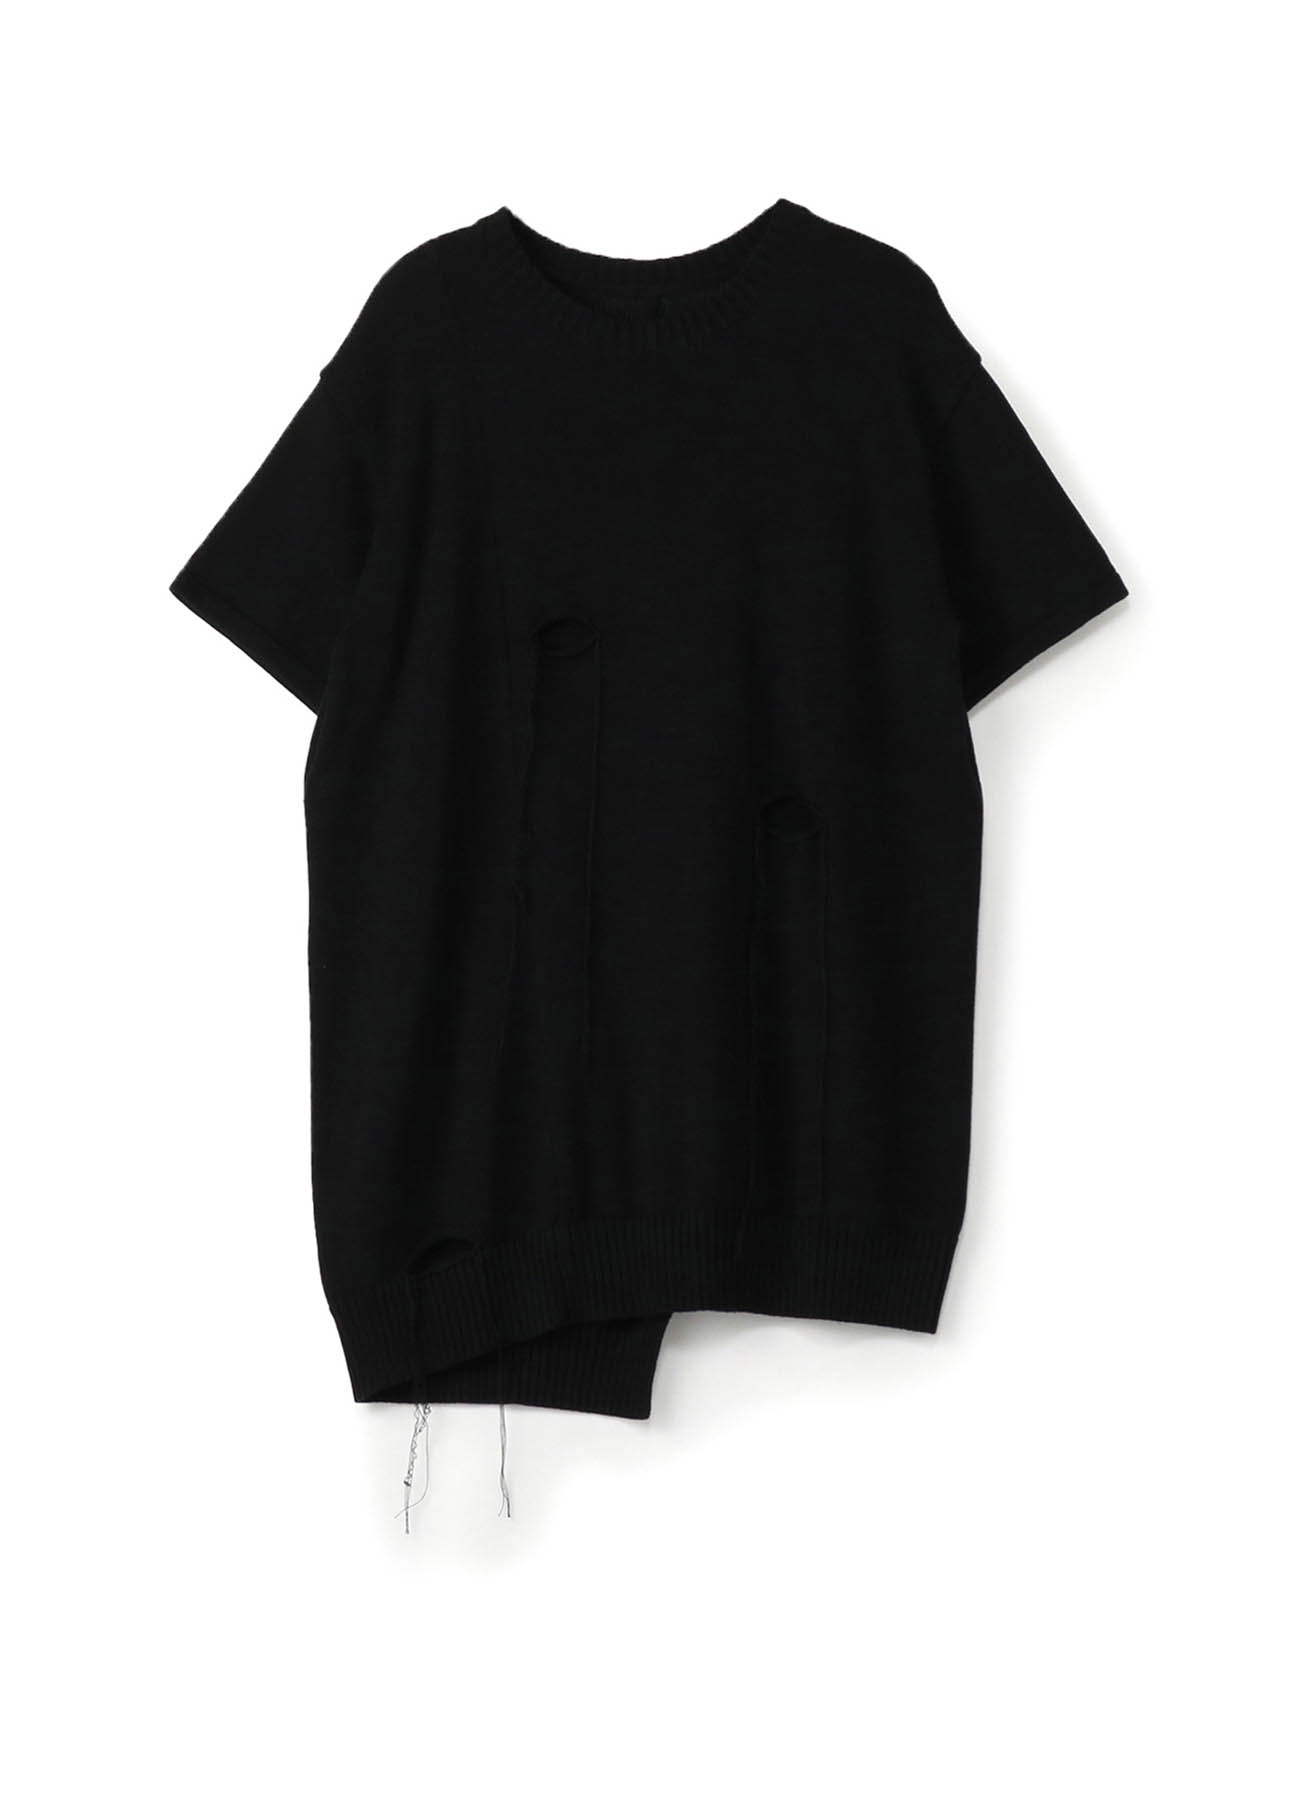 7G3P PS HOLE SHORT SLEEVE HOLE KNIT